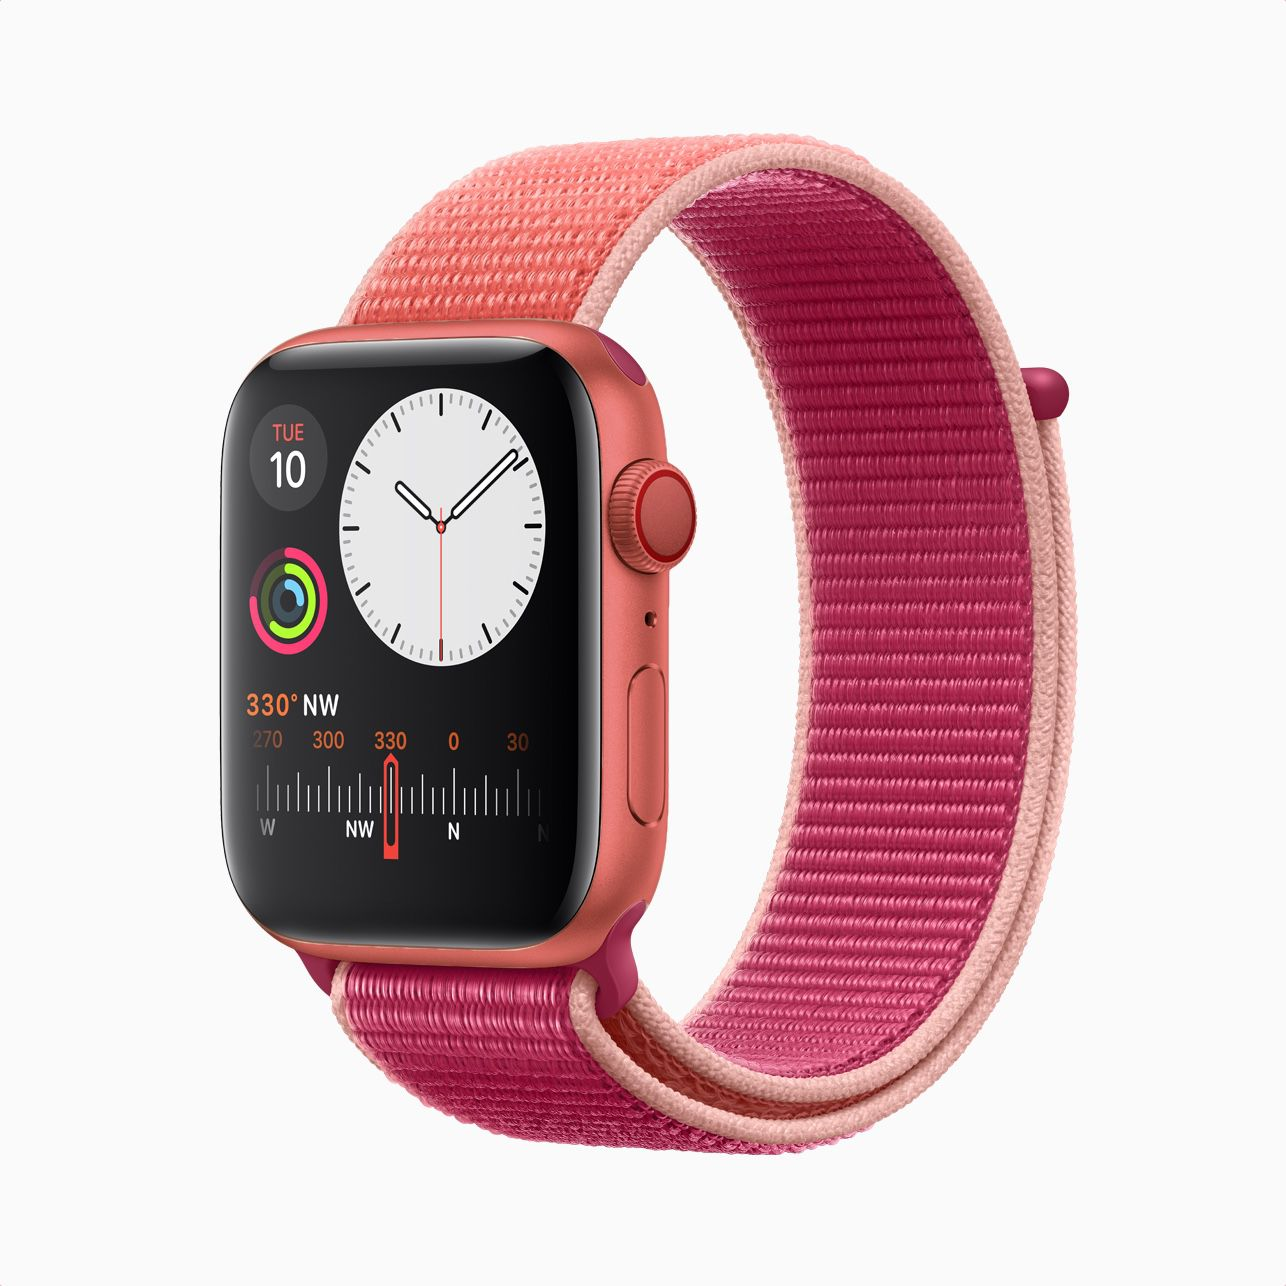 Apple Watch PRODUCT(RED) concept.